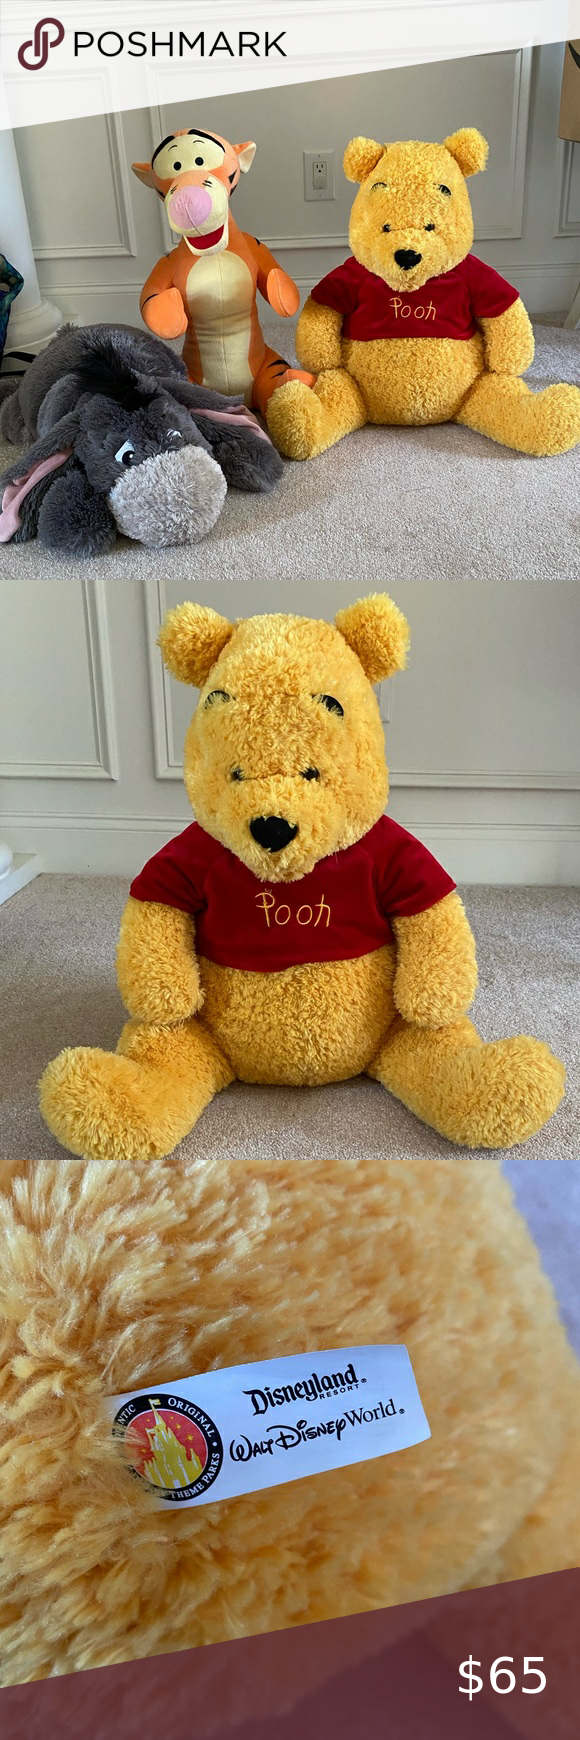 Bundle of Winnie the Pooh Plushes in 2020 Winnie the